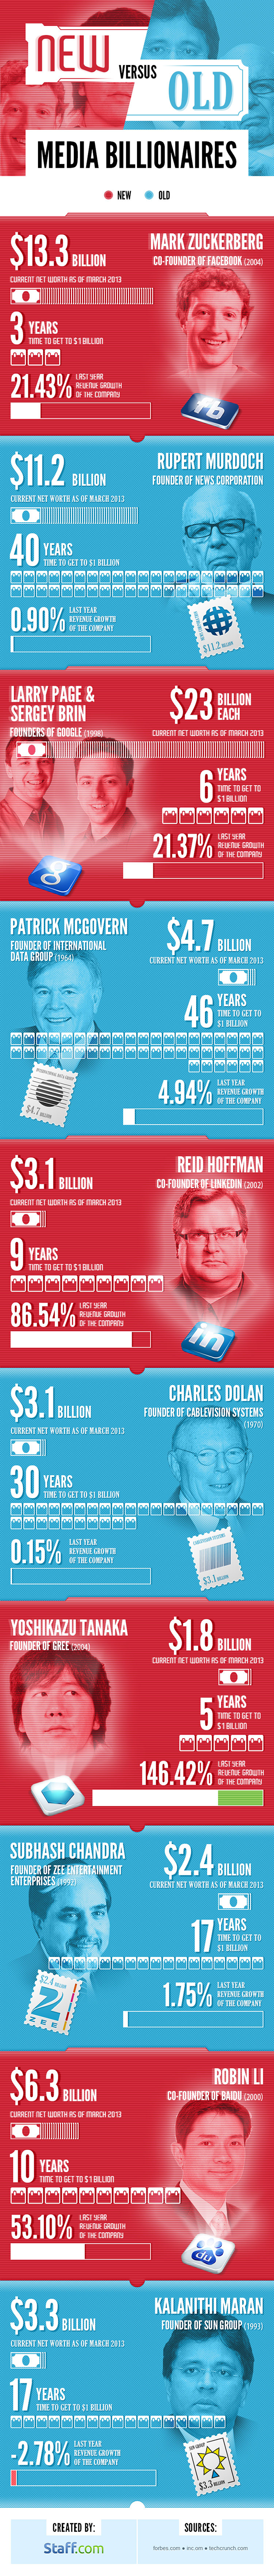 Staff.com presents New vs Old Media Billionaires - Infographic